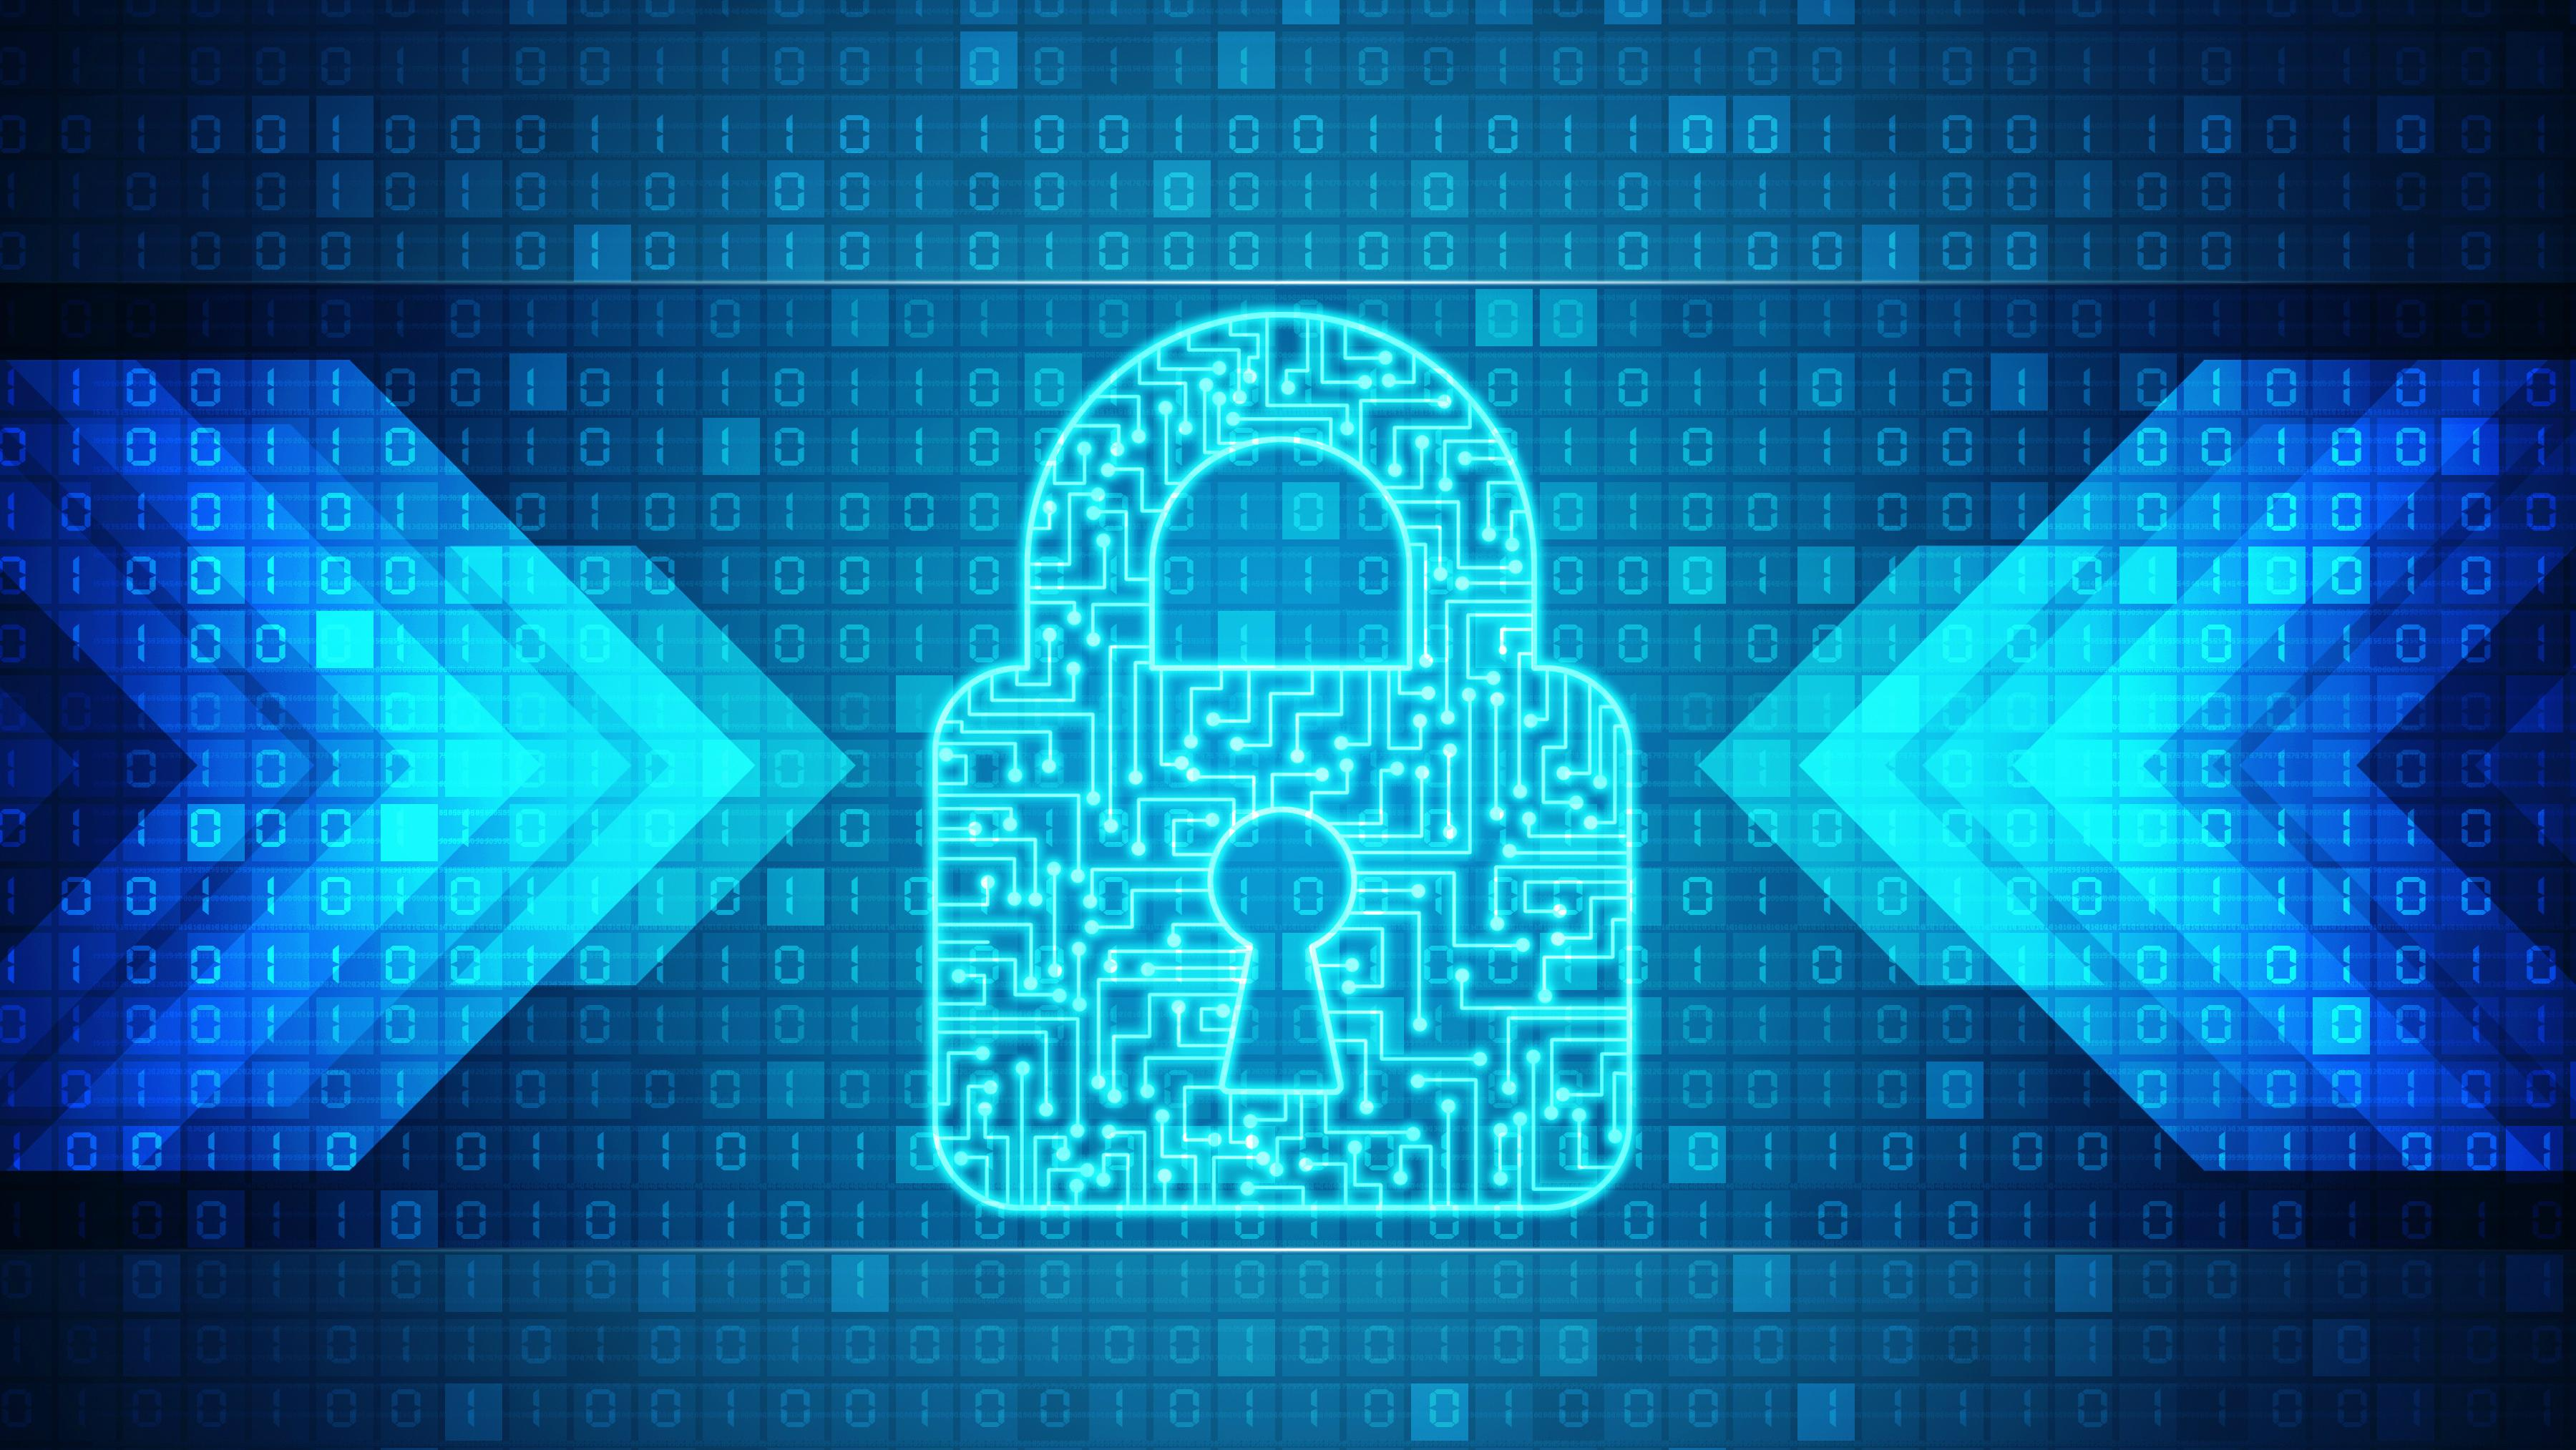 Gchq Information Security Arm Cesg Awards Six Firms Certified Cyber Data Software Image Of Digital Padlock